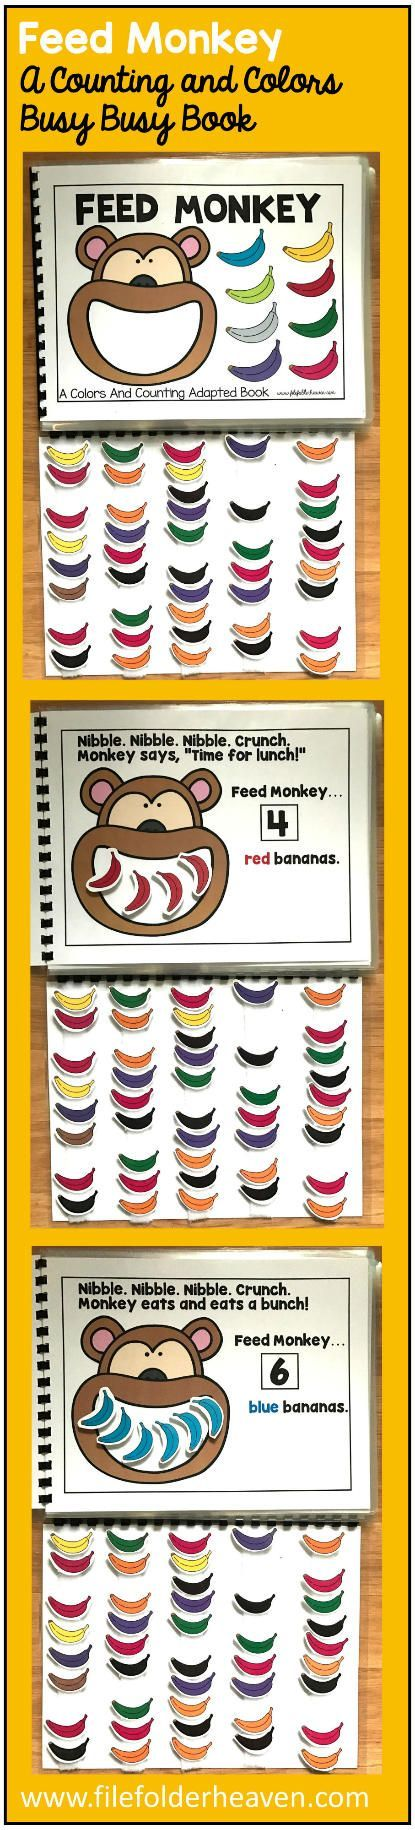 This Feed Monkey Colors and Counting Adapted Book is an adapted book that focuses on colors and counting in a fun and interactive way. In a small group, independent center or independent work station. A teacher or student reads through the book and feeds the animal or critter, the correct number and color the food on each page. Sample text: